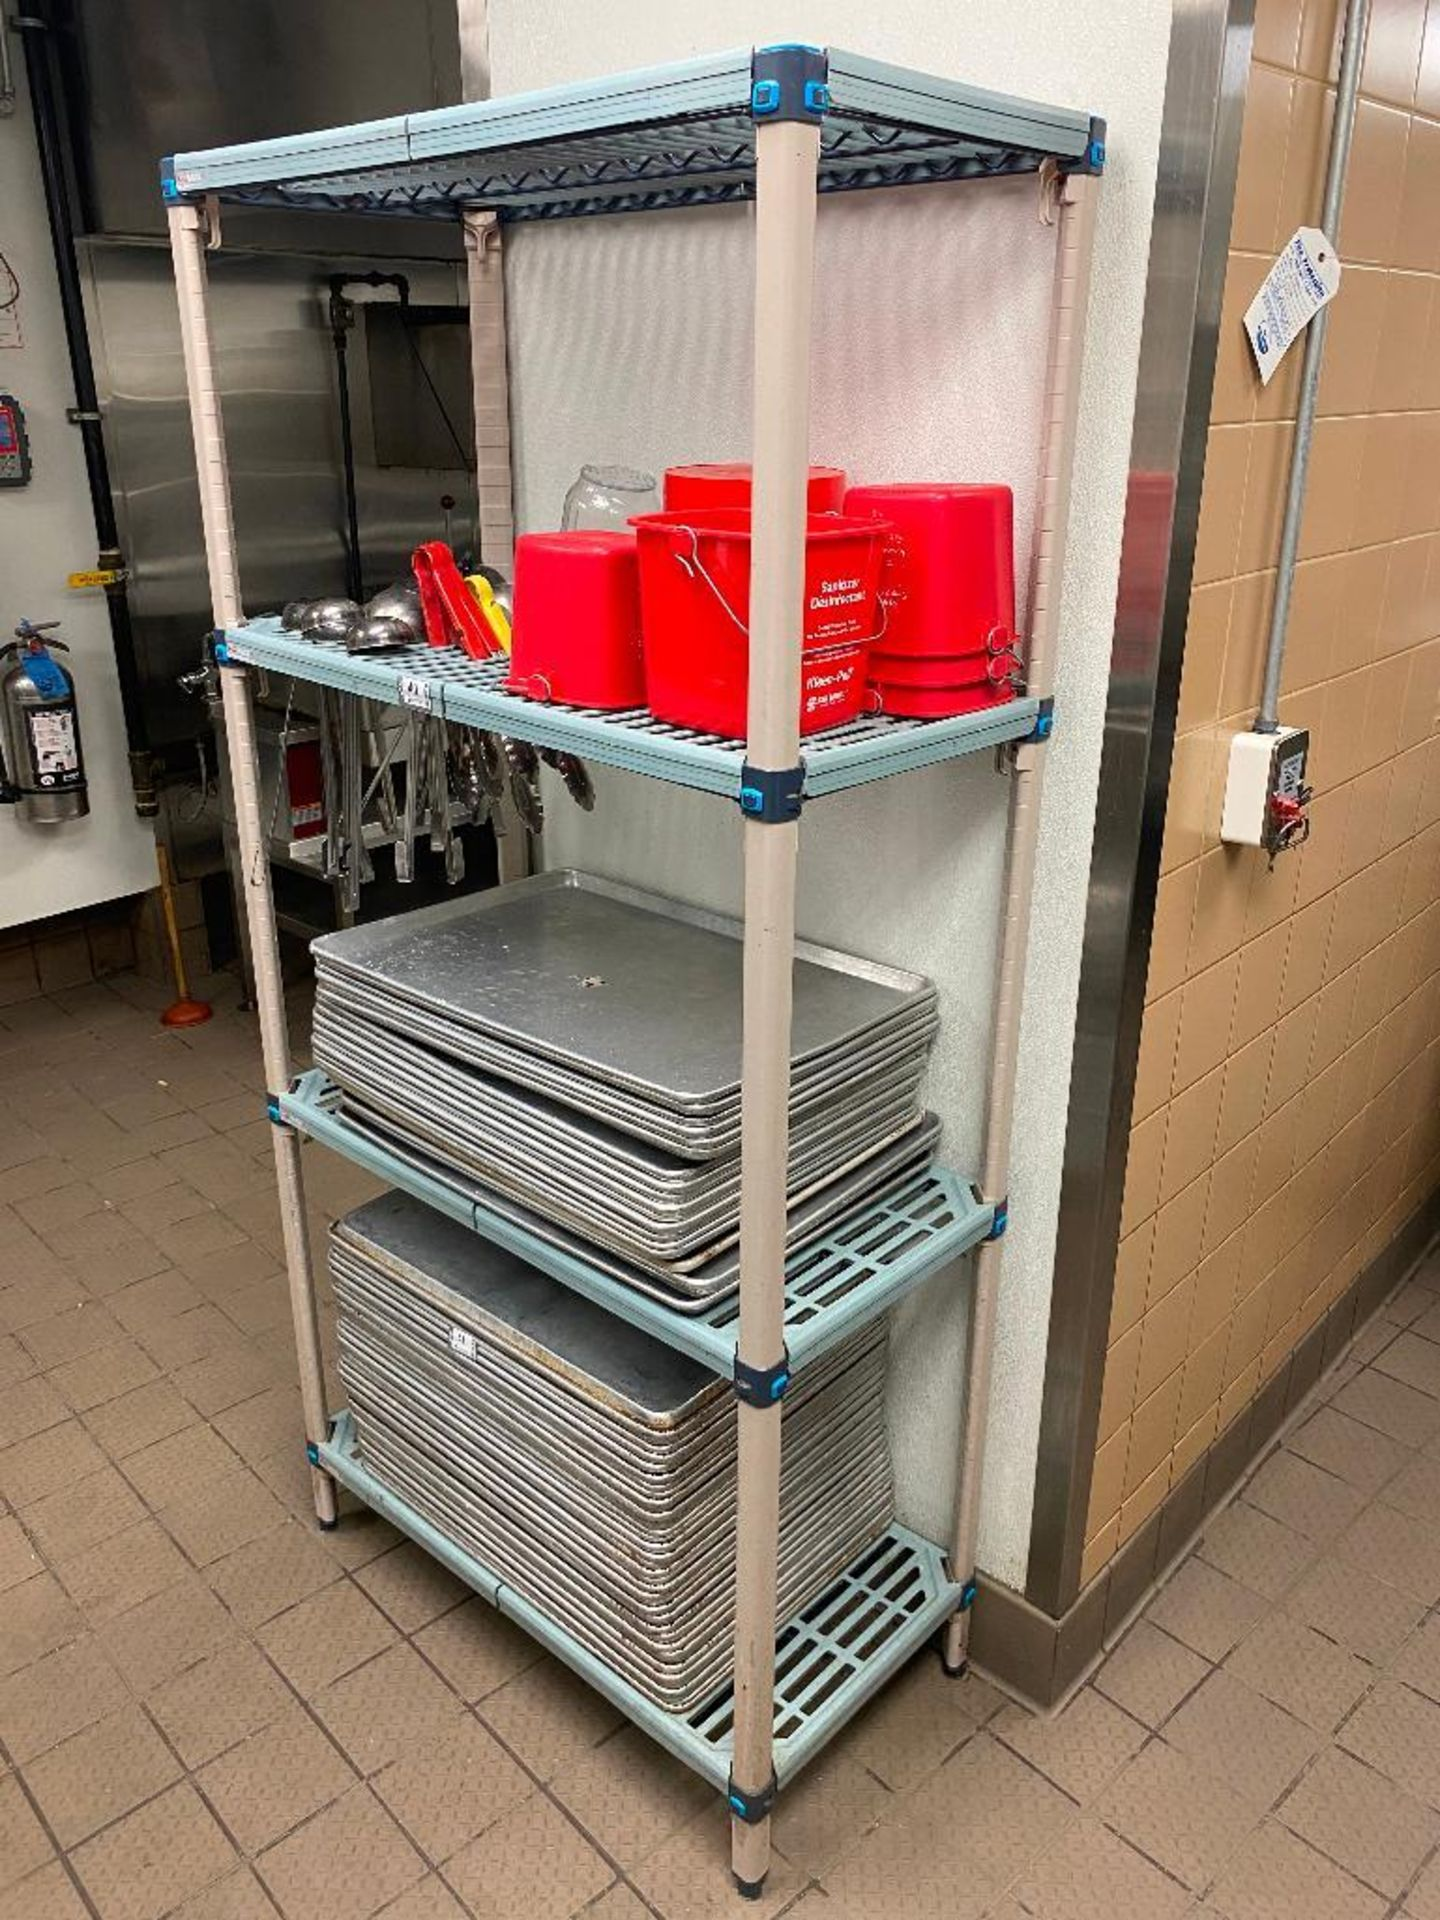 METRO MAX PLASTIC STORAGE RACK WITH STAINLESS STEEL LADLES AND RED WASH BUCKETS - Image 2 of 3